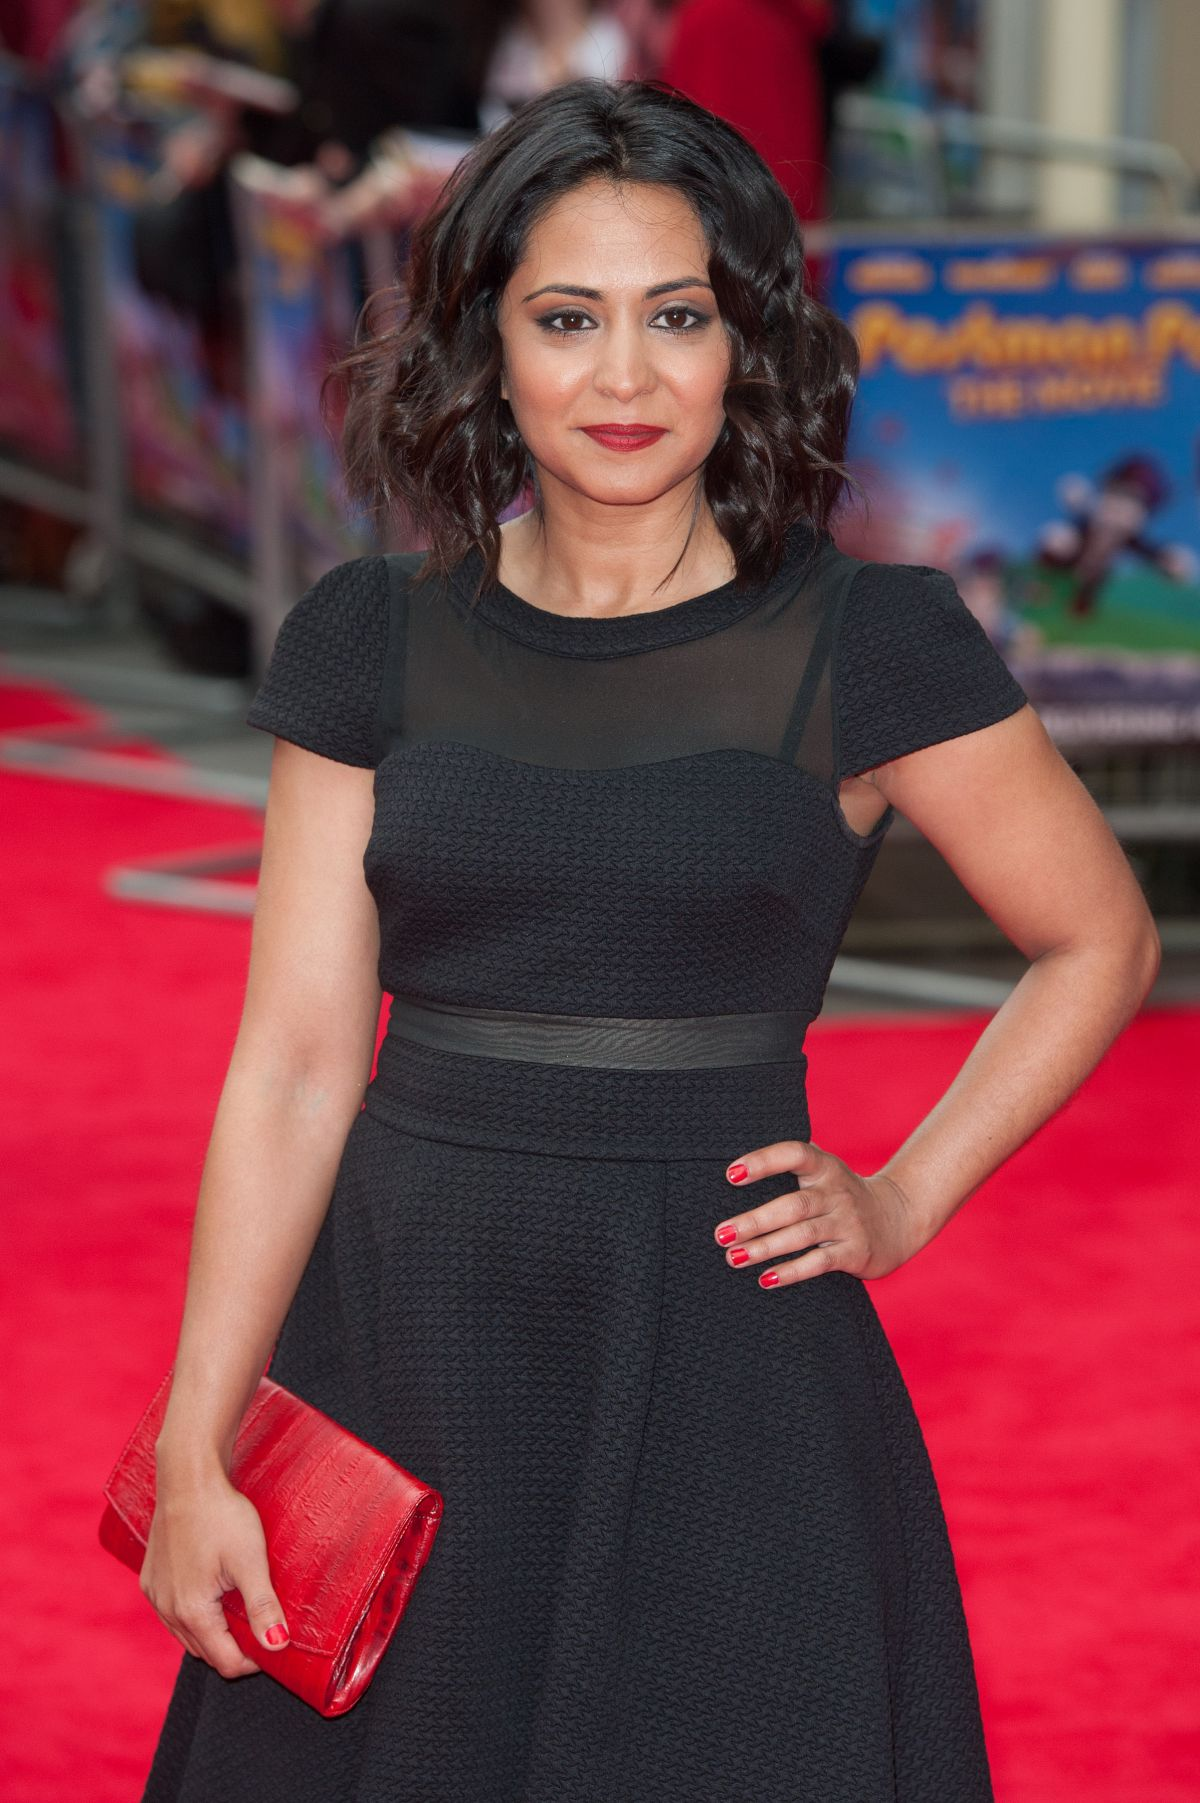 parminder nagra movies and tv shows